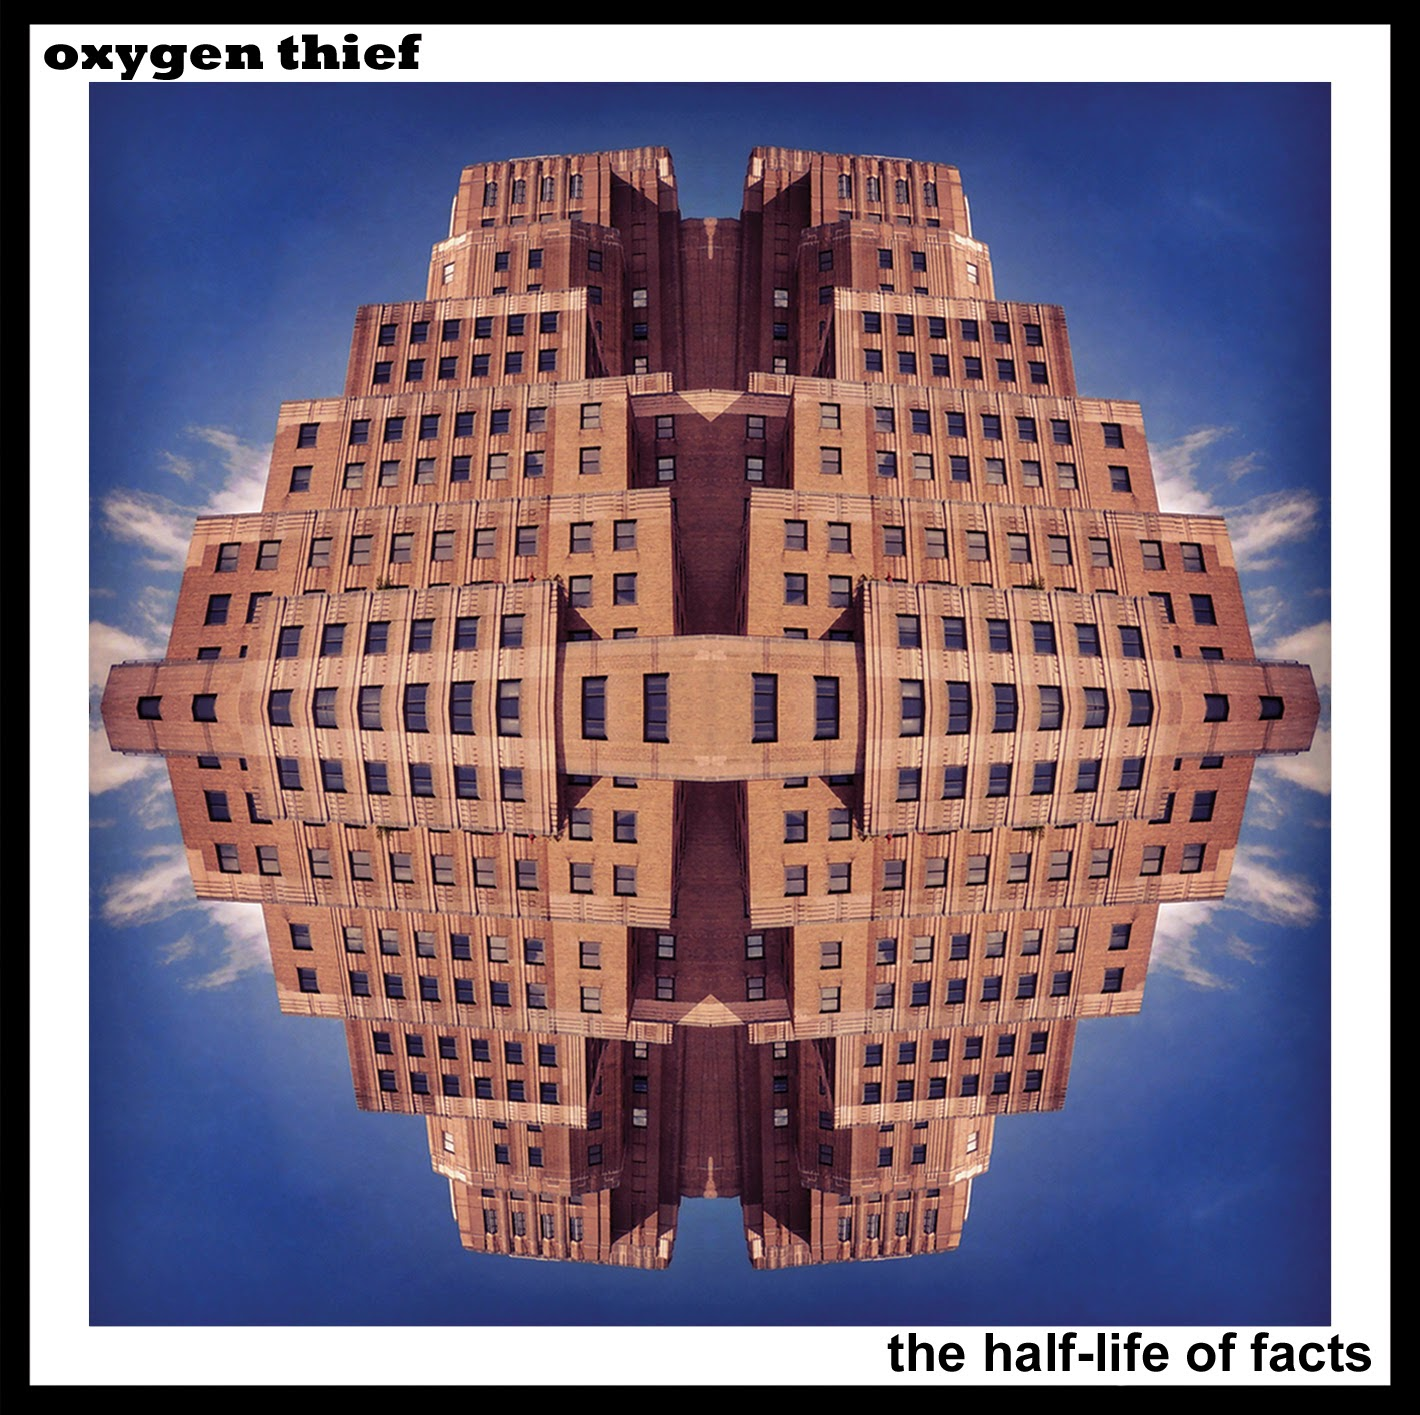 Oxygen Thief New Album The Half-Life of Facts